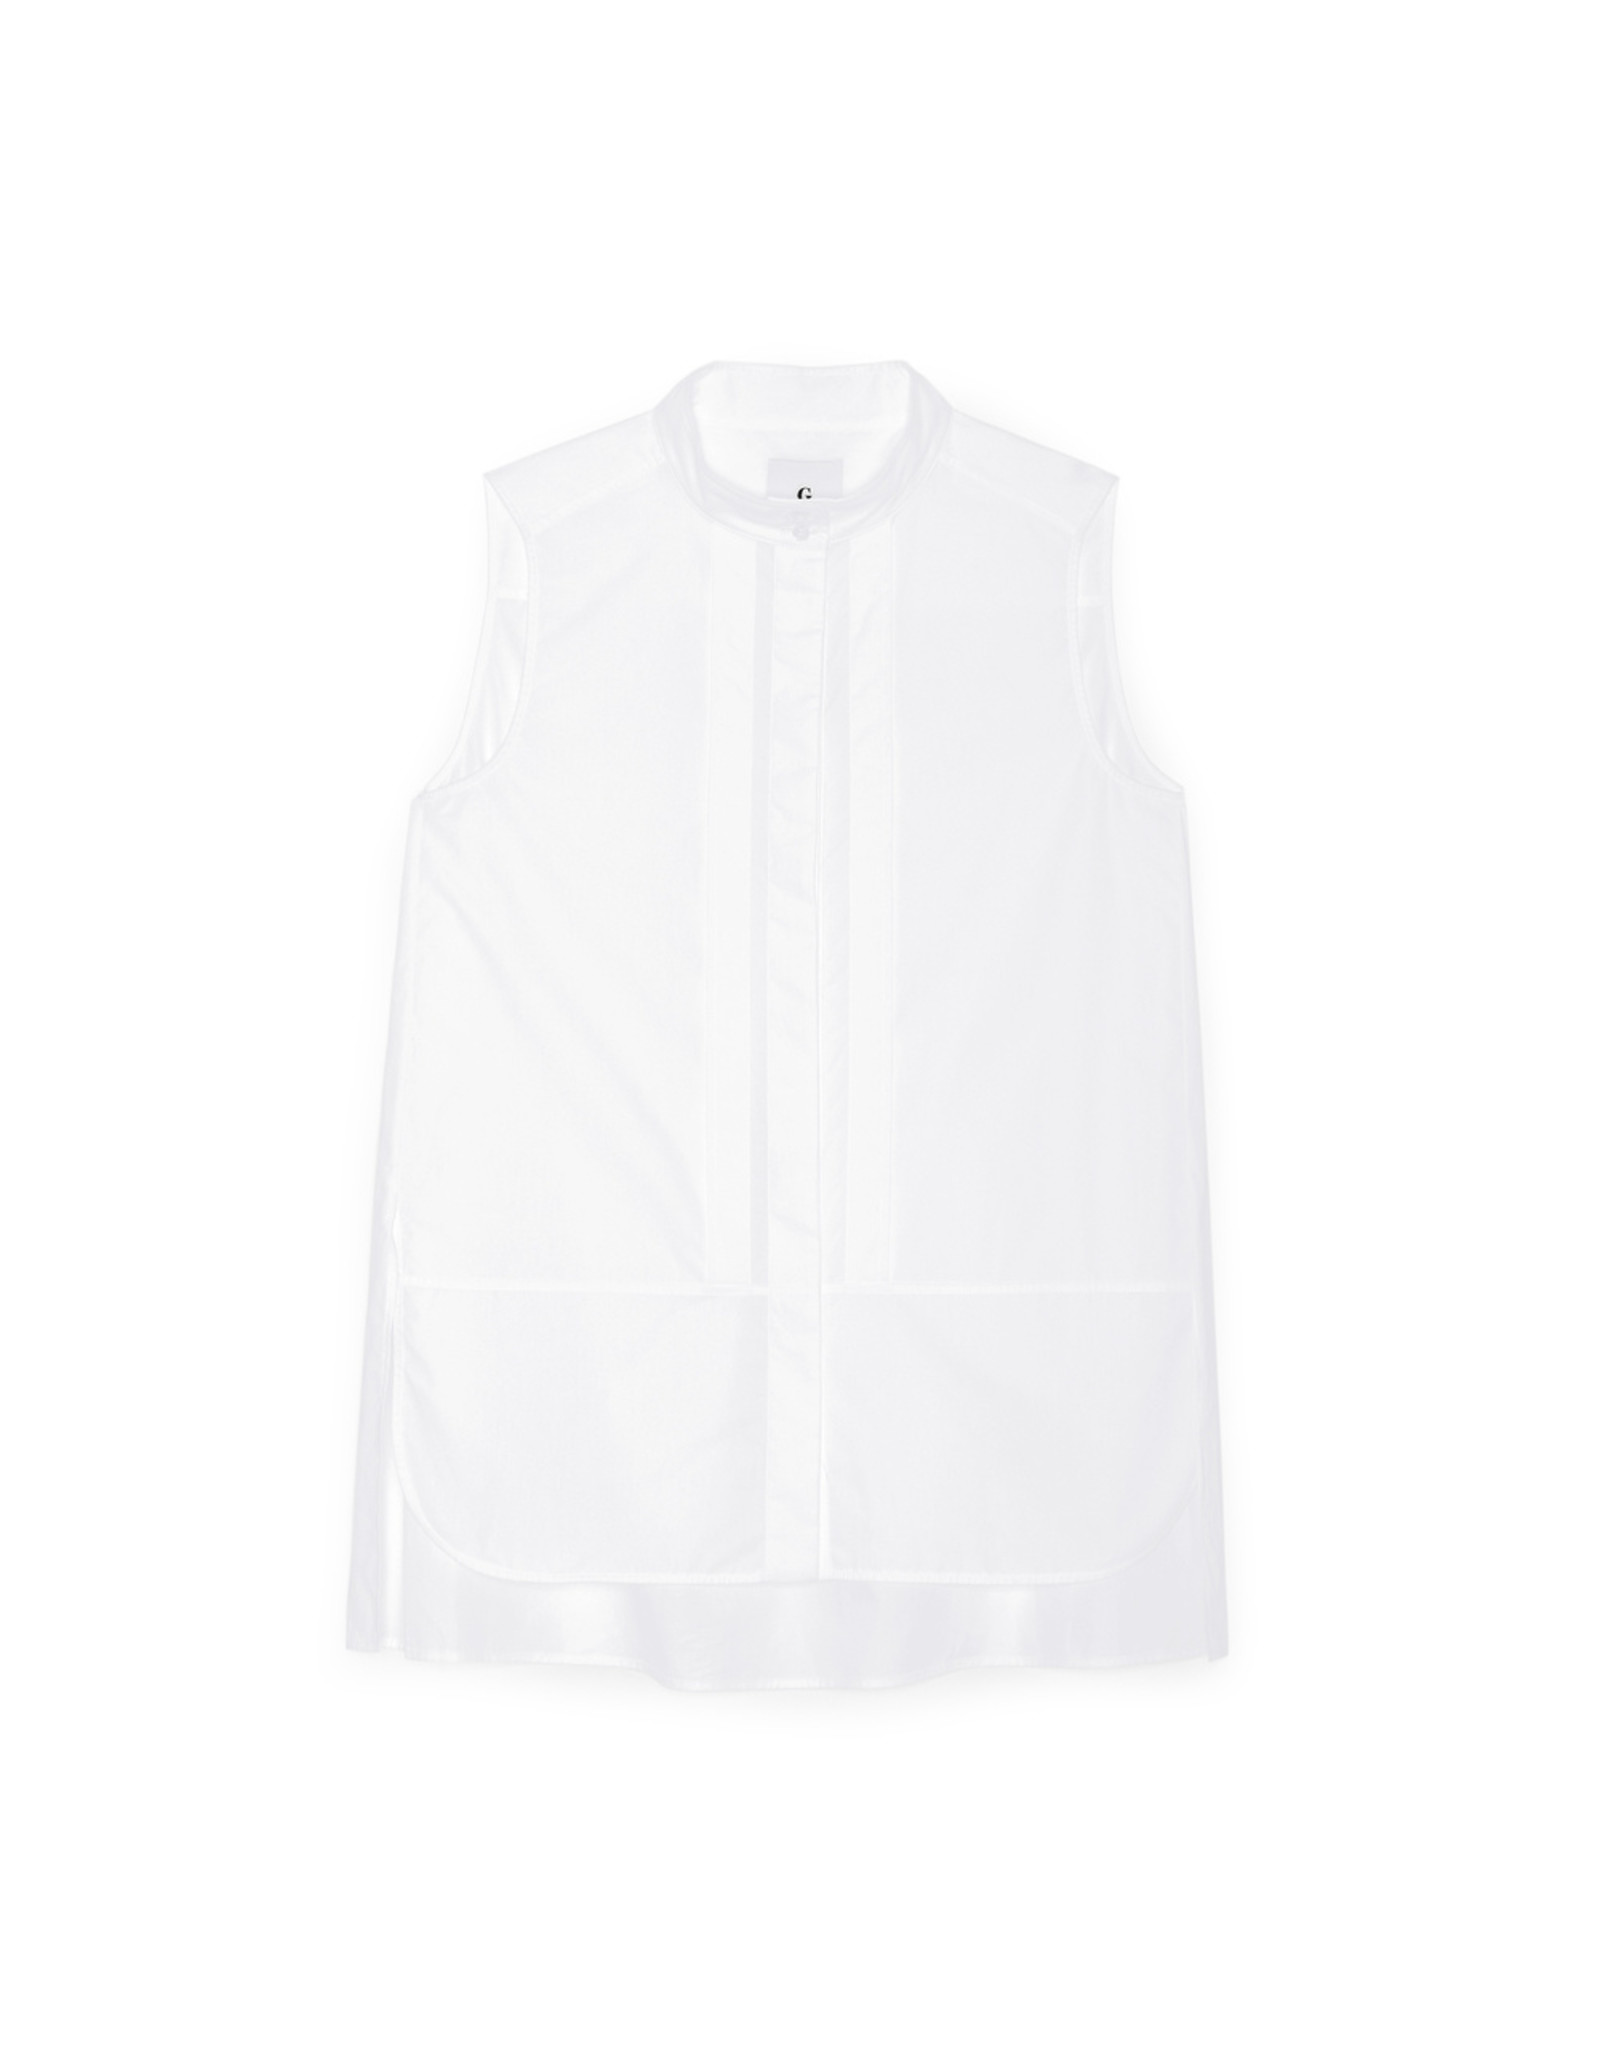 G. Label G. Label Casey Pleat Collar Shirt (Color: White, Size: 8)